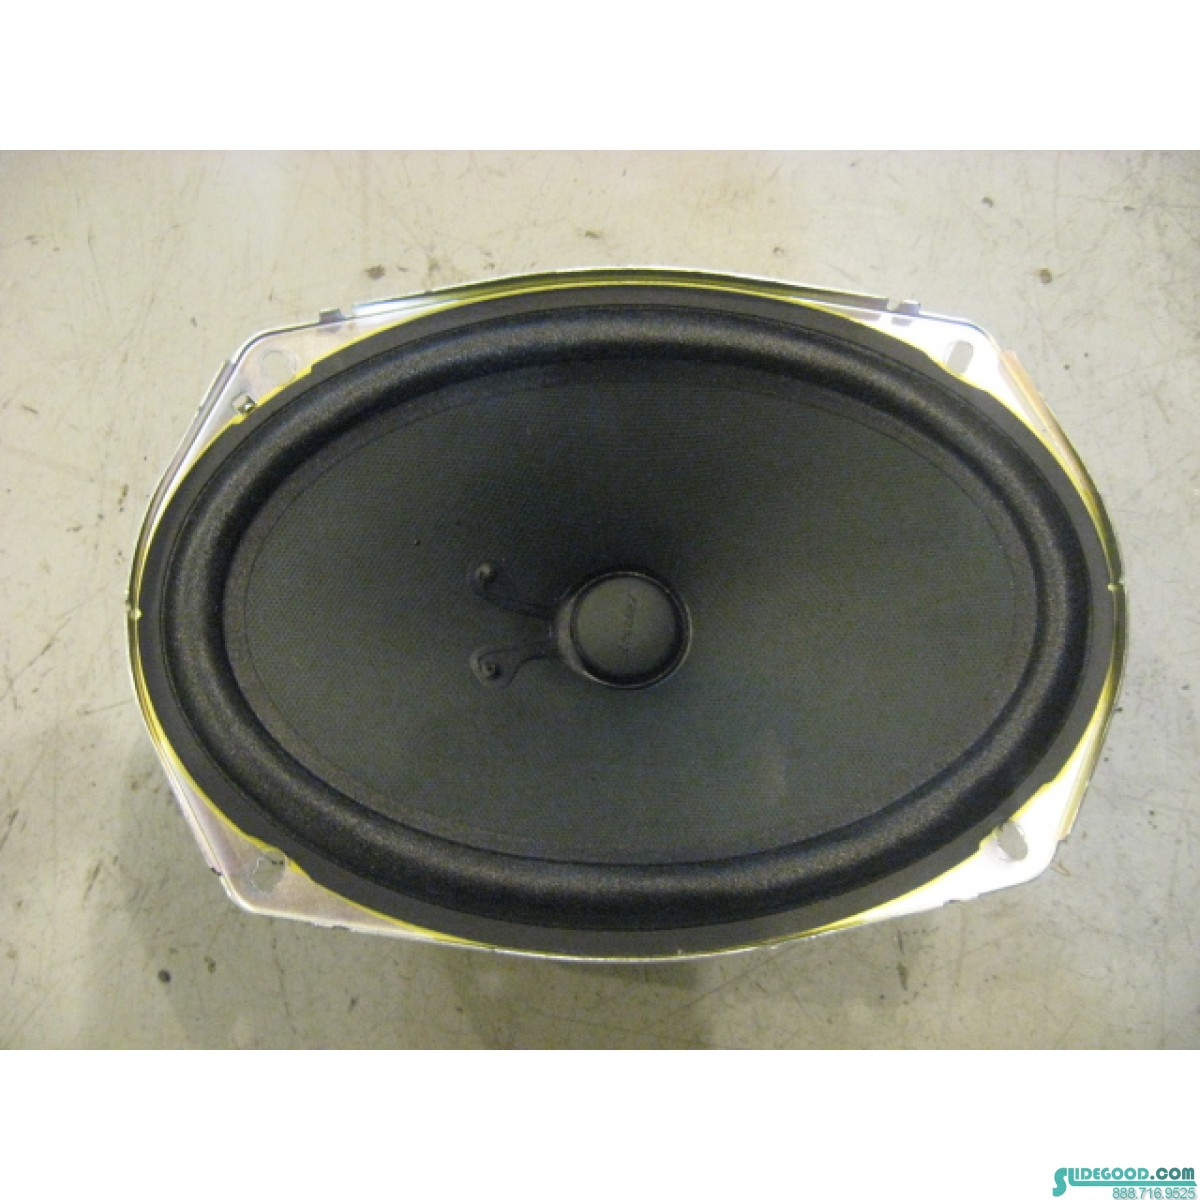 bose 6x9 car speakers. 11 nissan 370z rear bose 6x9 speaker 28157 jl00a r13036 car speakers